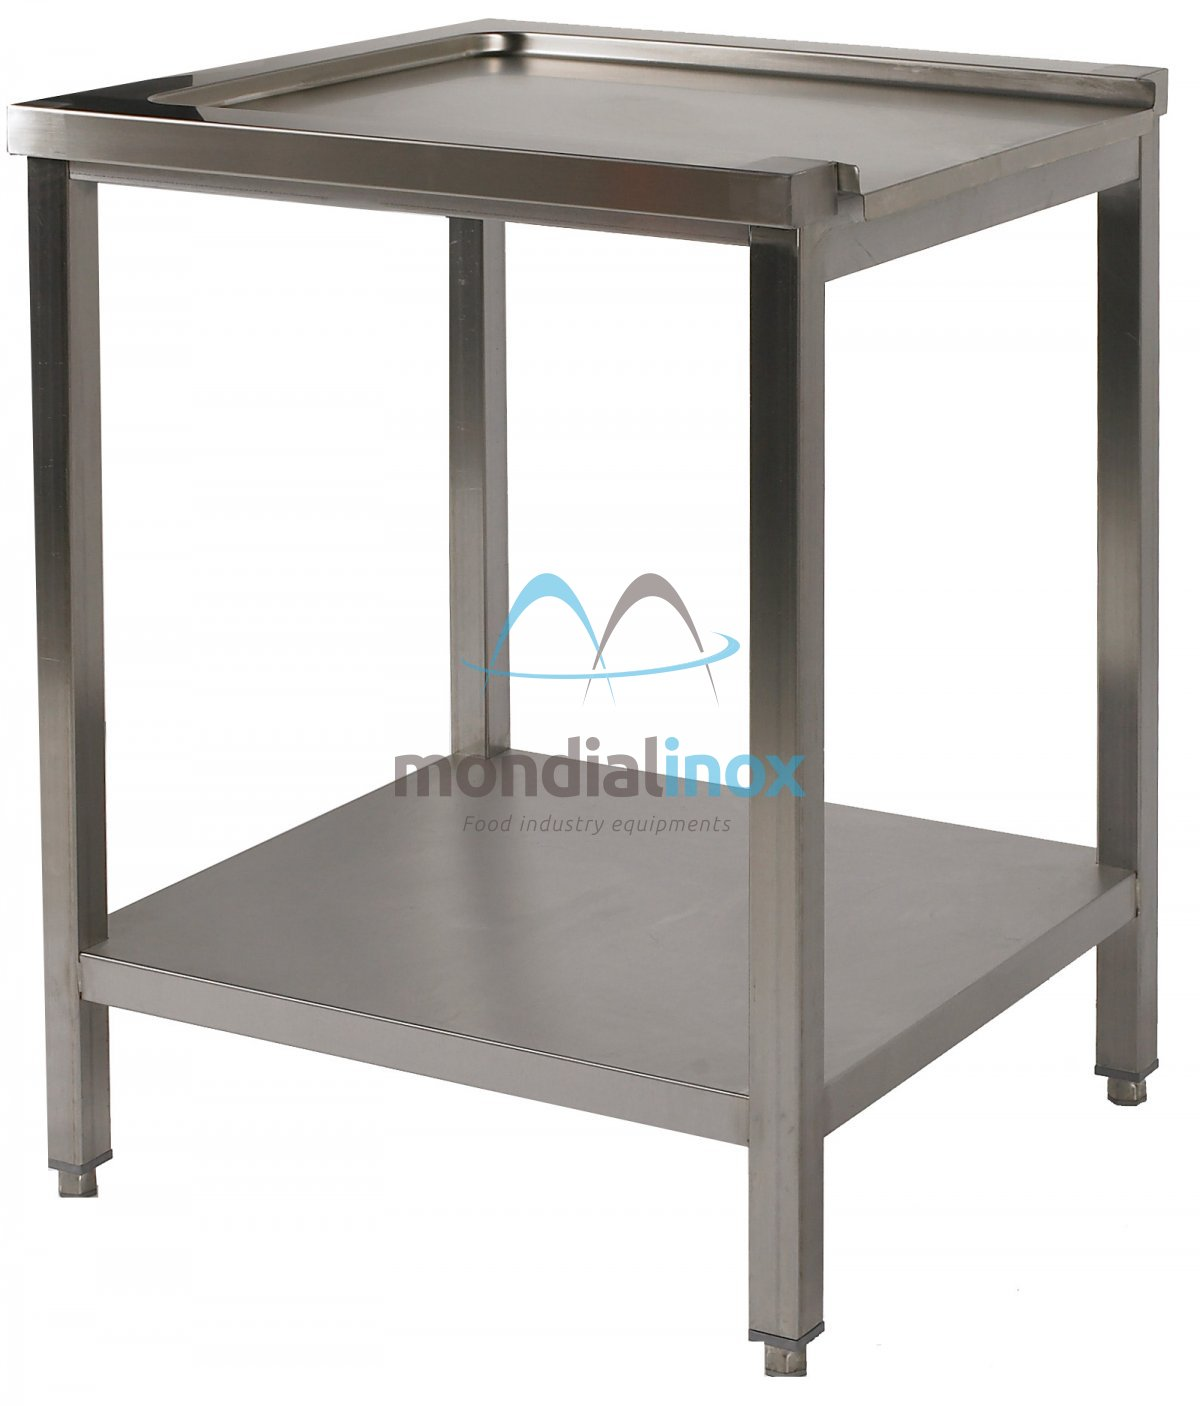 Stainless Steel Exit Table For Dishwasher Sink Mondial Inox - Stainless steel dishwasher table